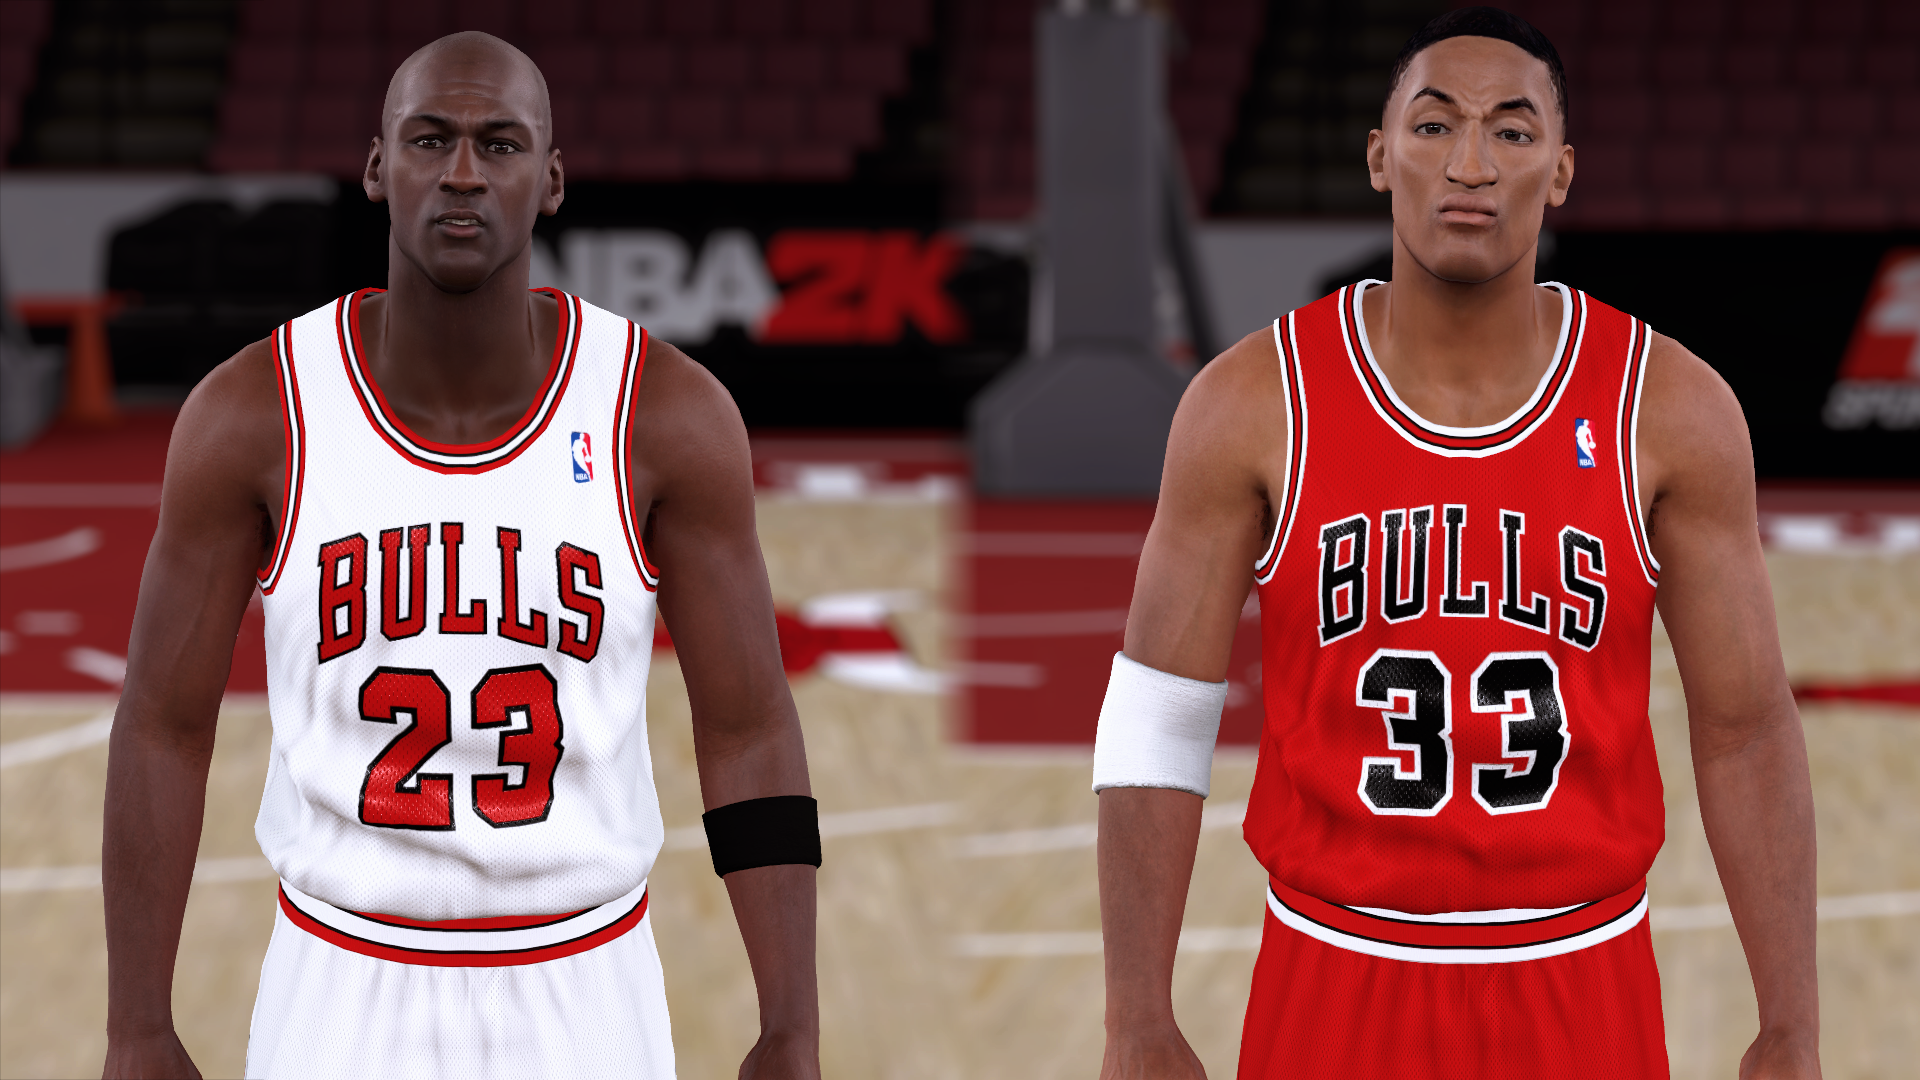 1990-1991 Bulls Jerseys - PeacemanNOT